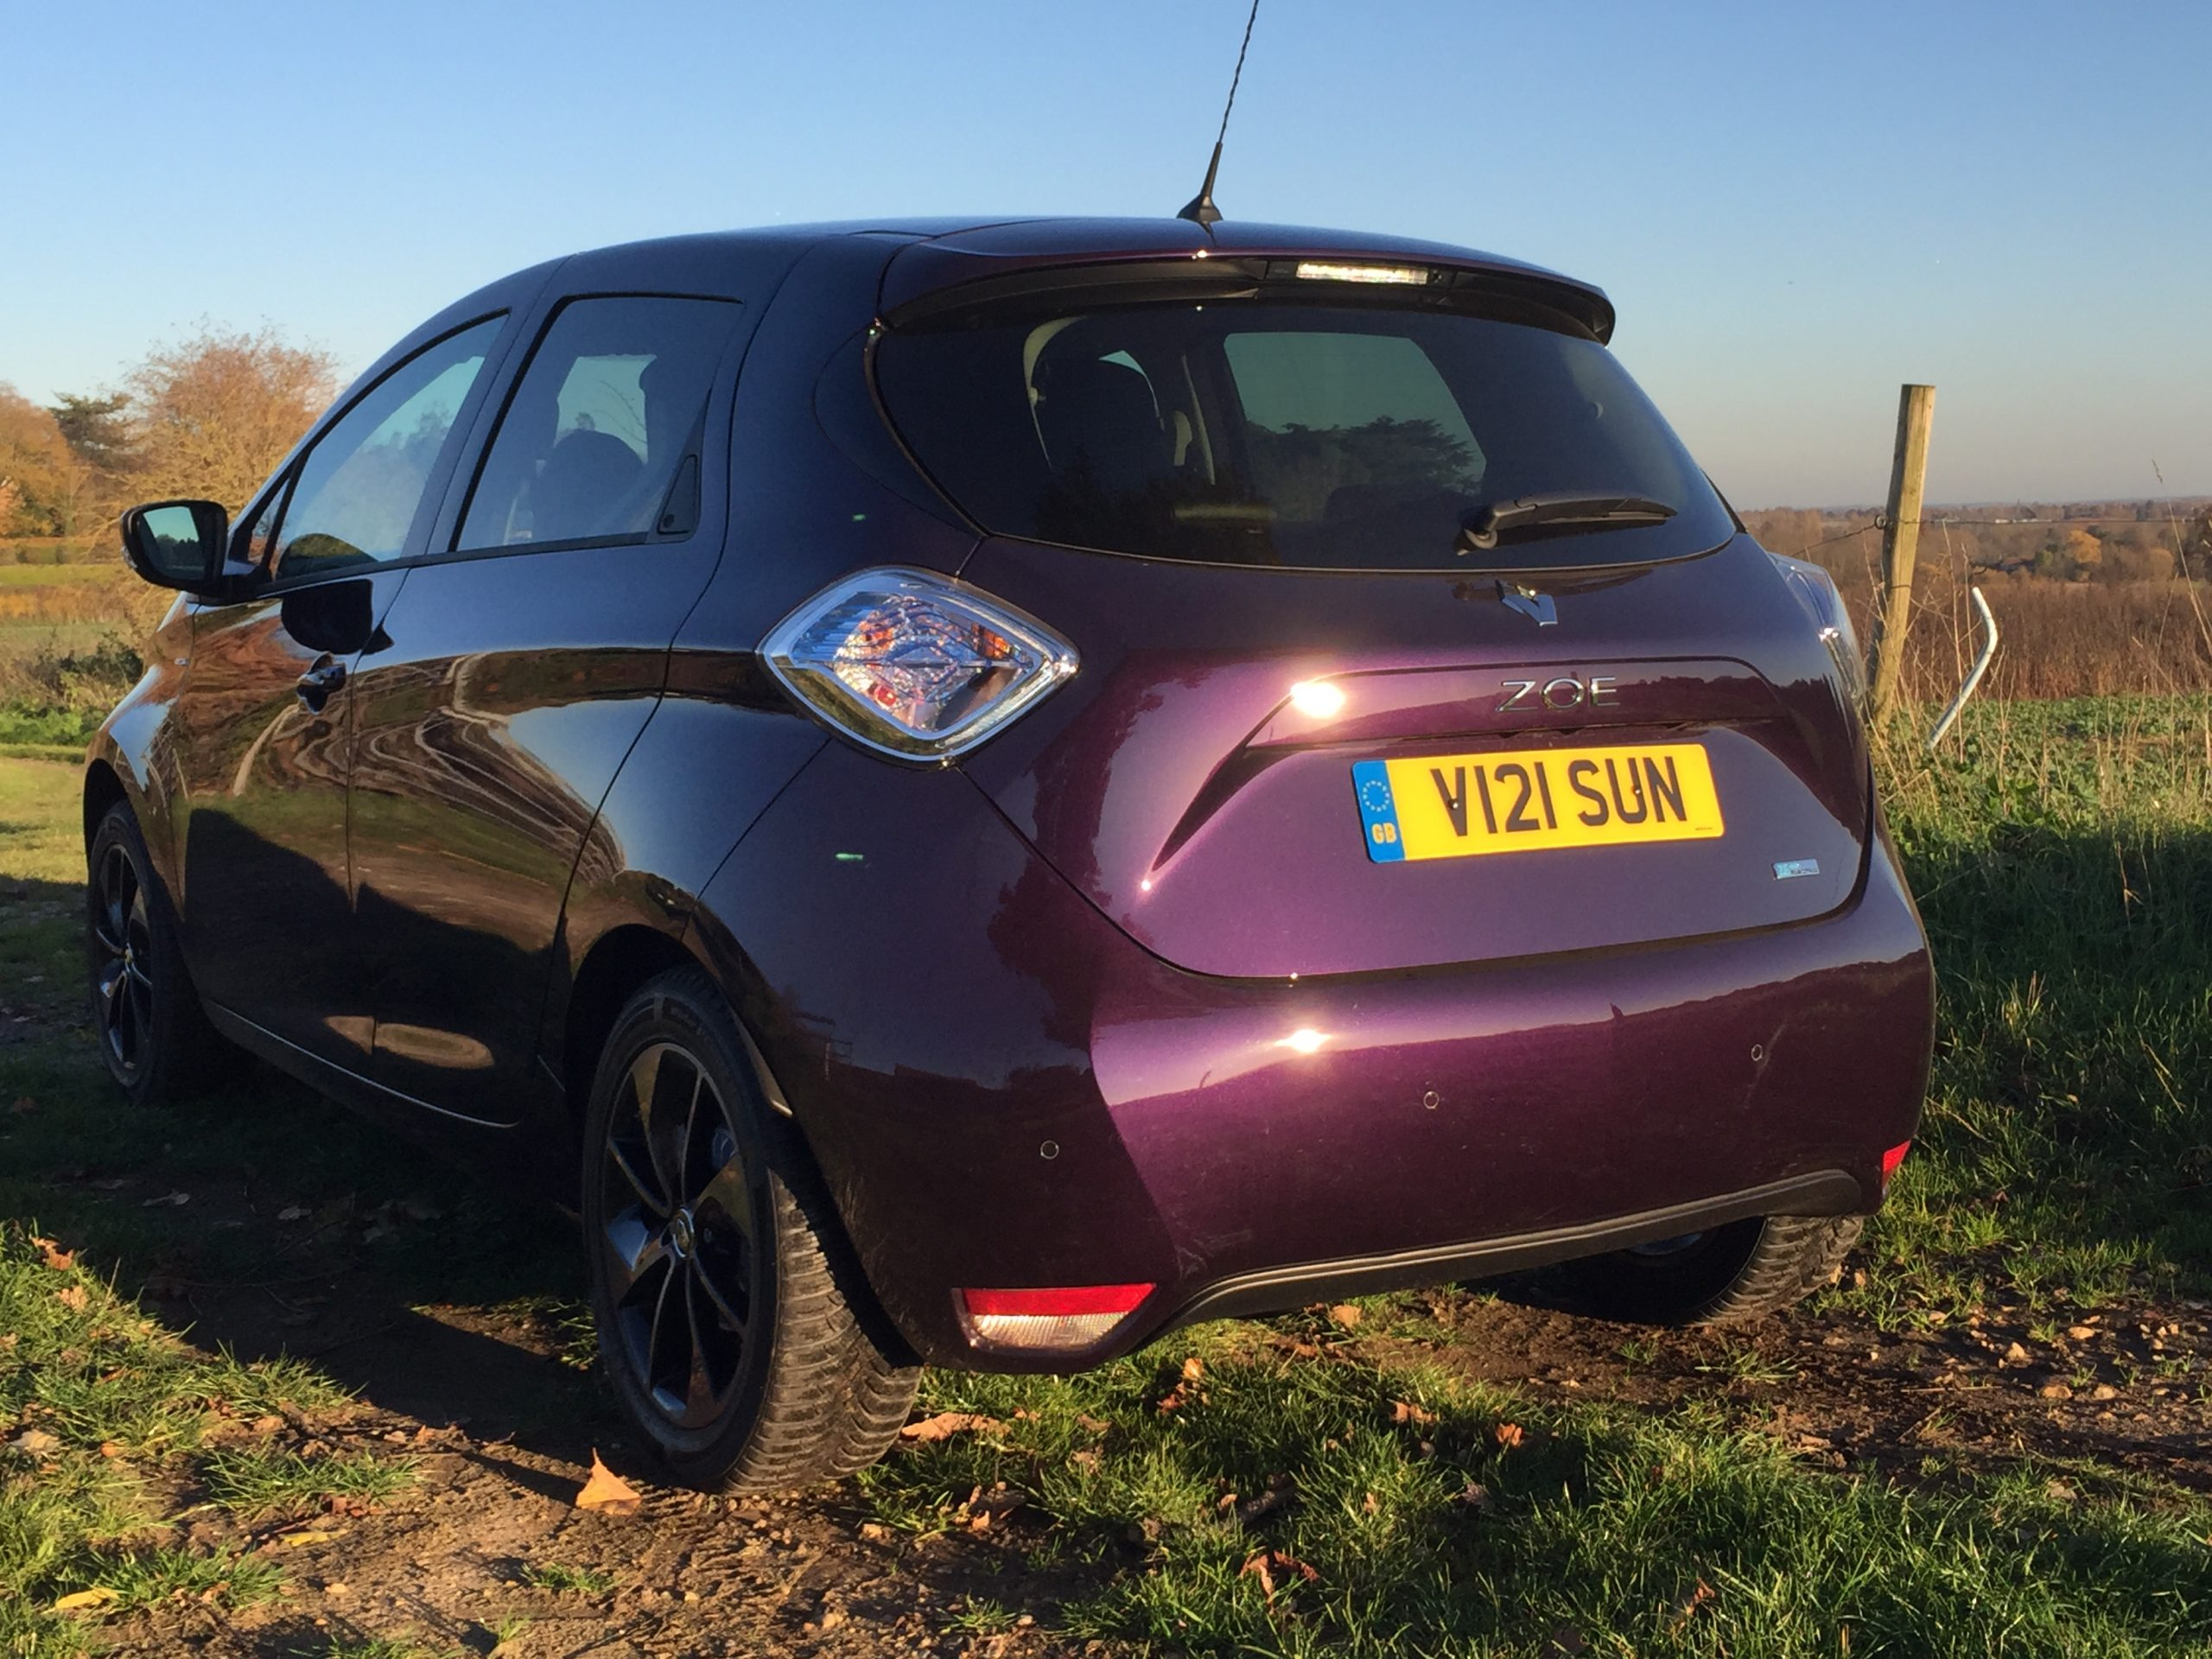 Rear view of Renault Zoe parked in front of a field in the sunshine